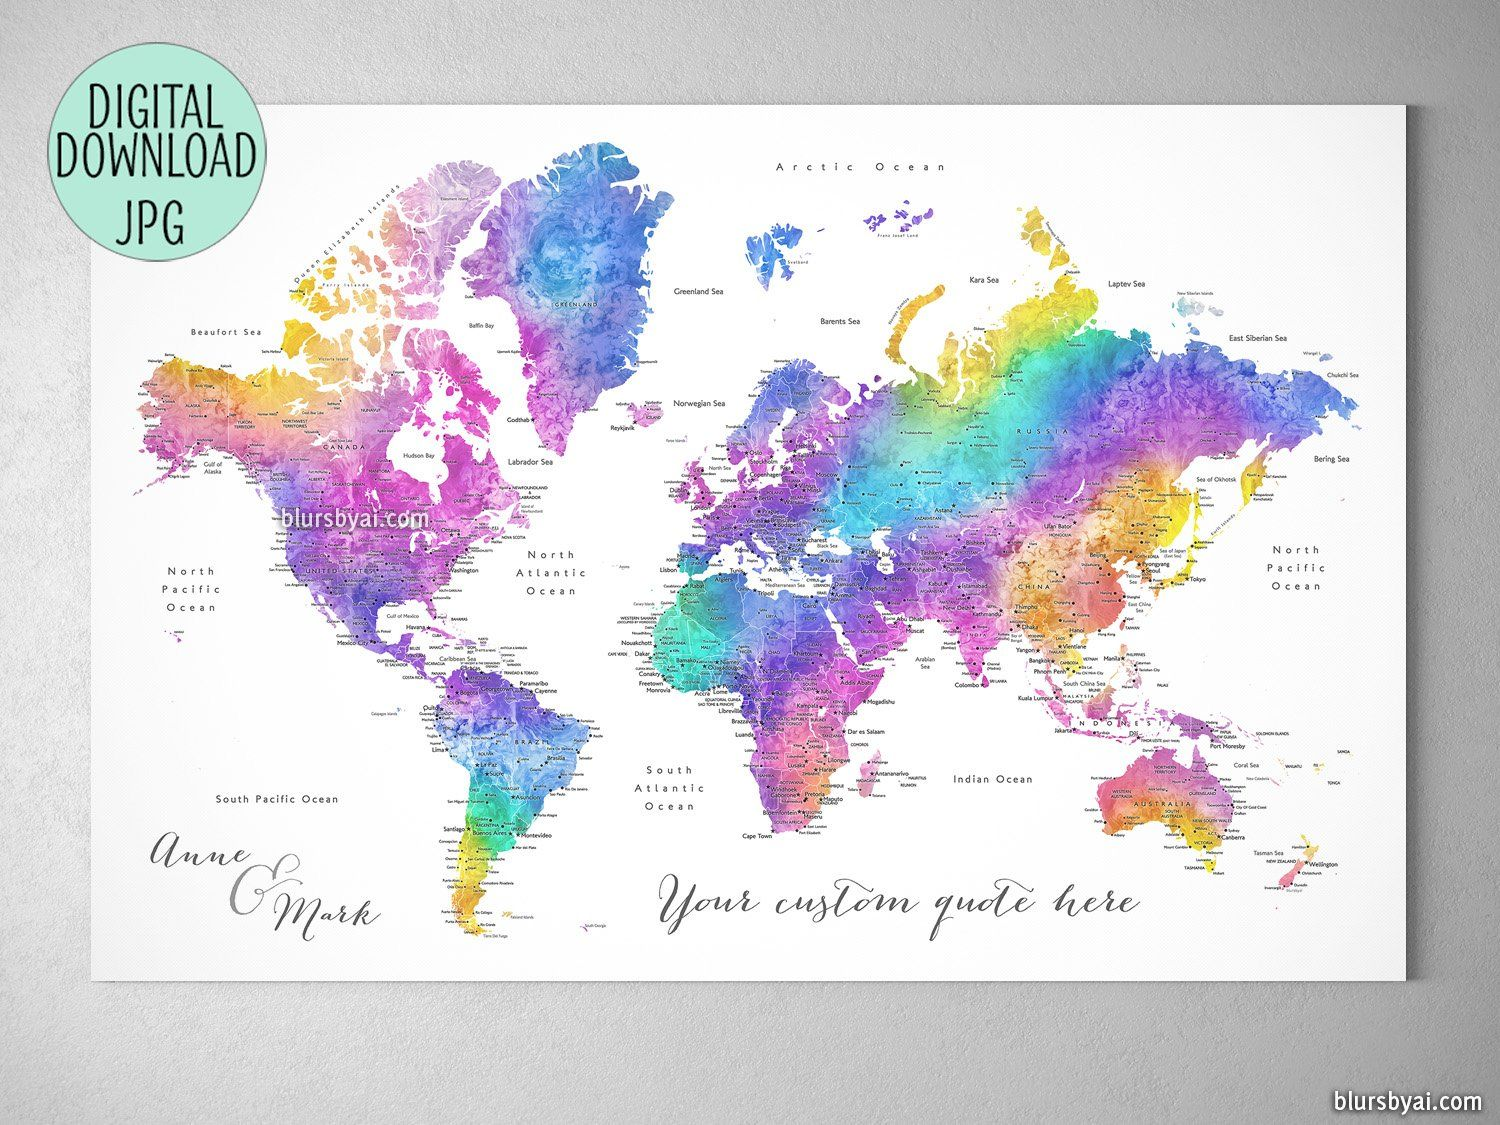 Custom quote printable world map with cities in bright ...